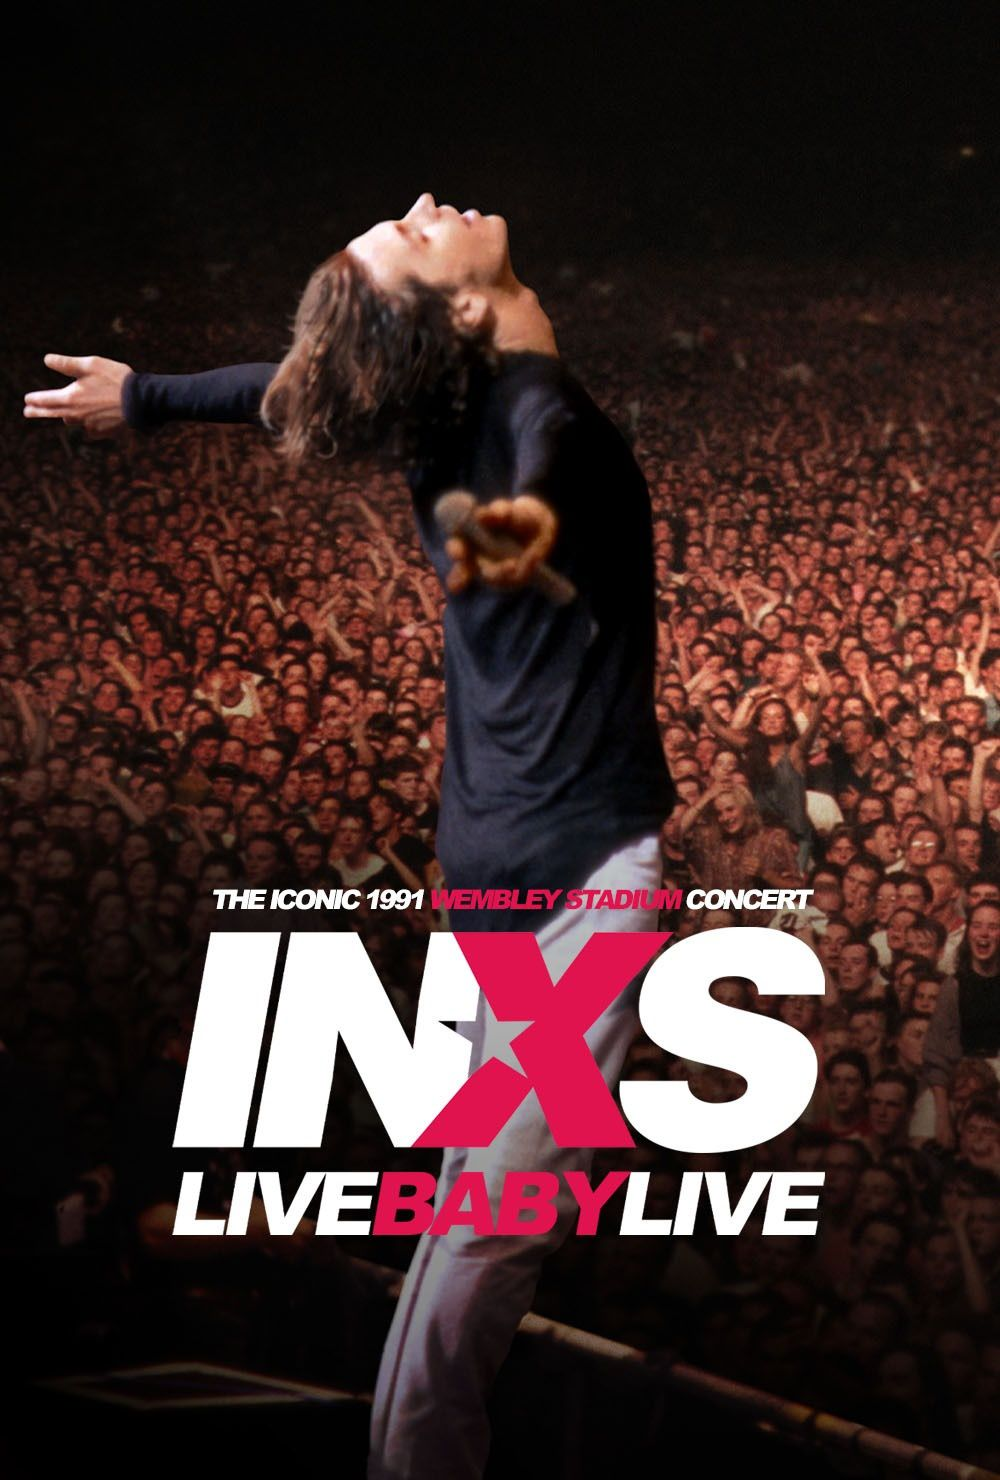 INXS : Live Baby Live at Wembley Stadium (BANDE-ANNONCE)